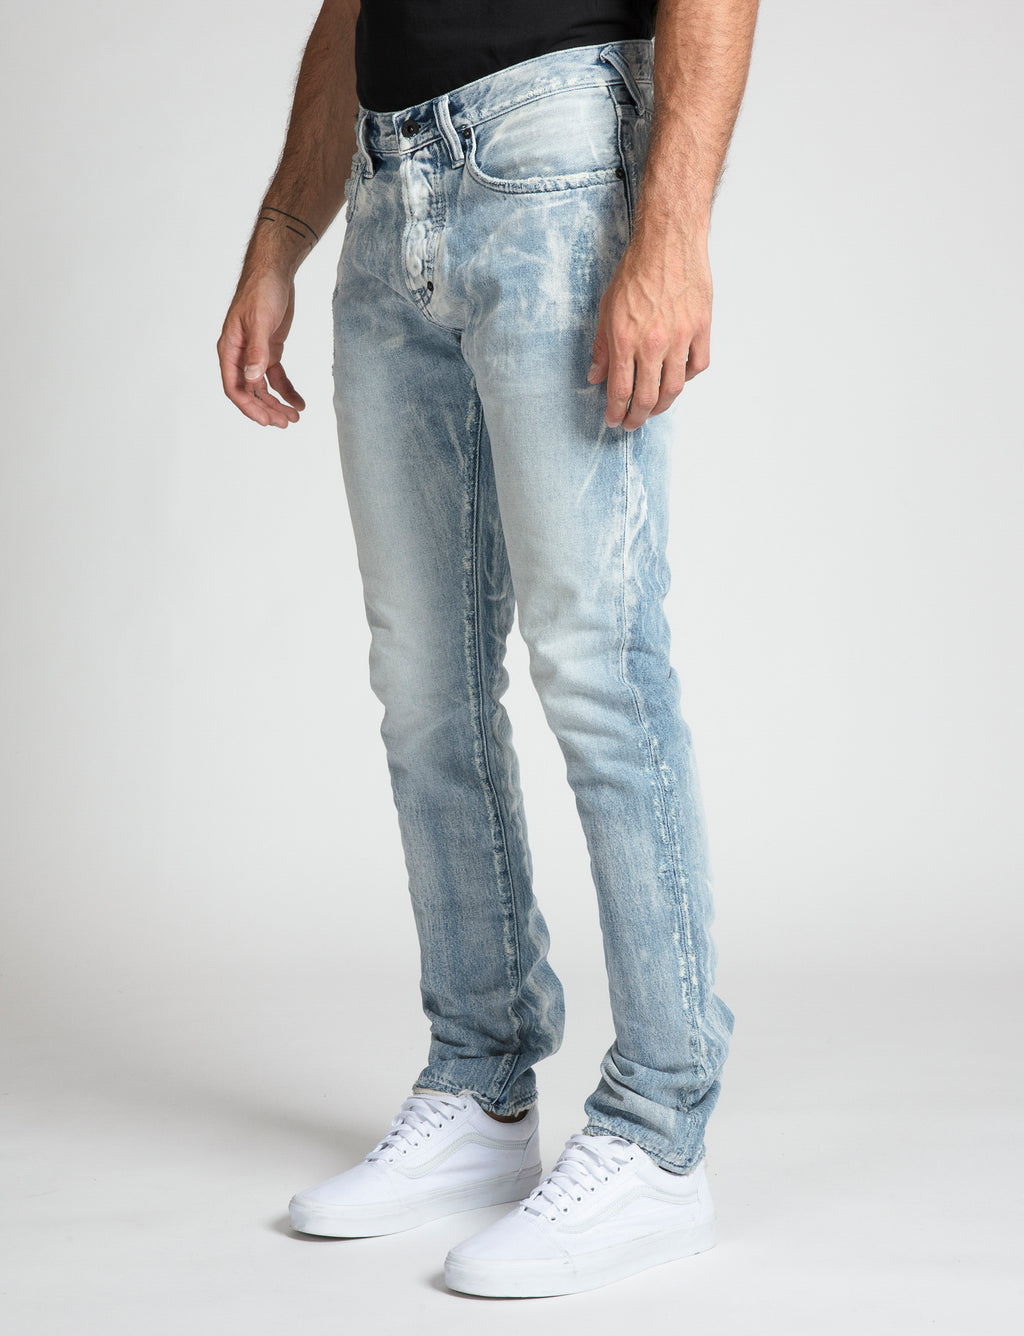 Prps - Le Sabre - Calculate - Jeans - Prps